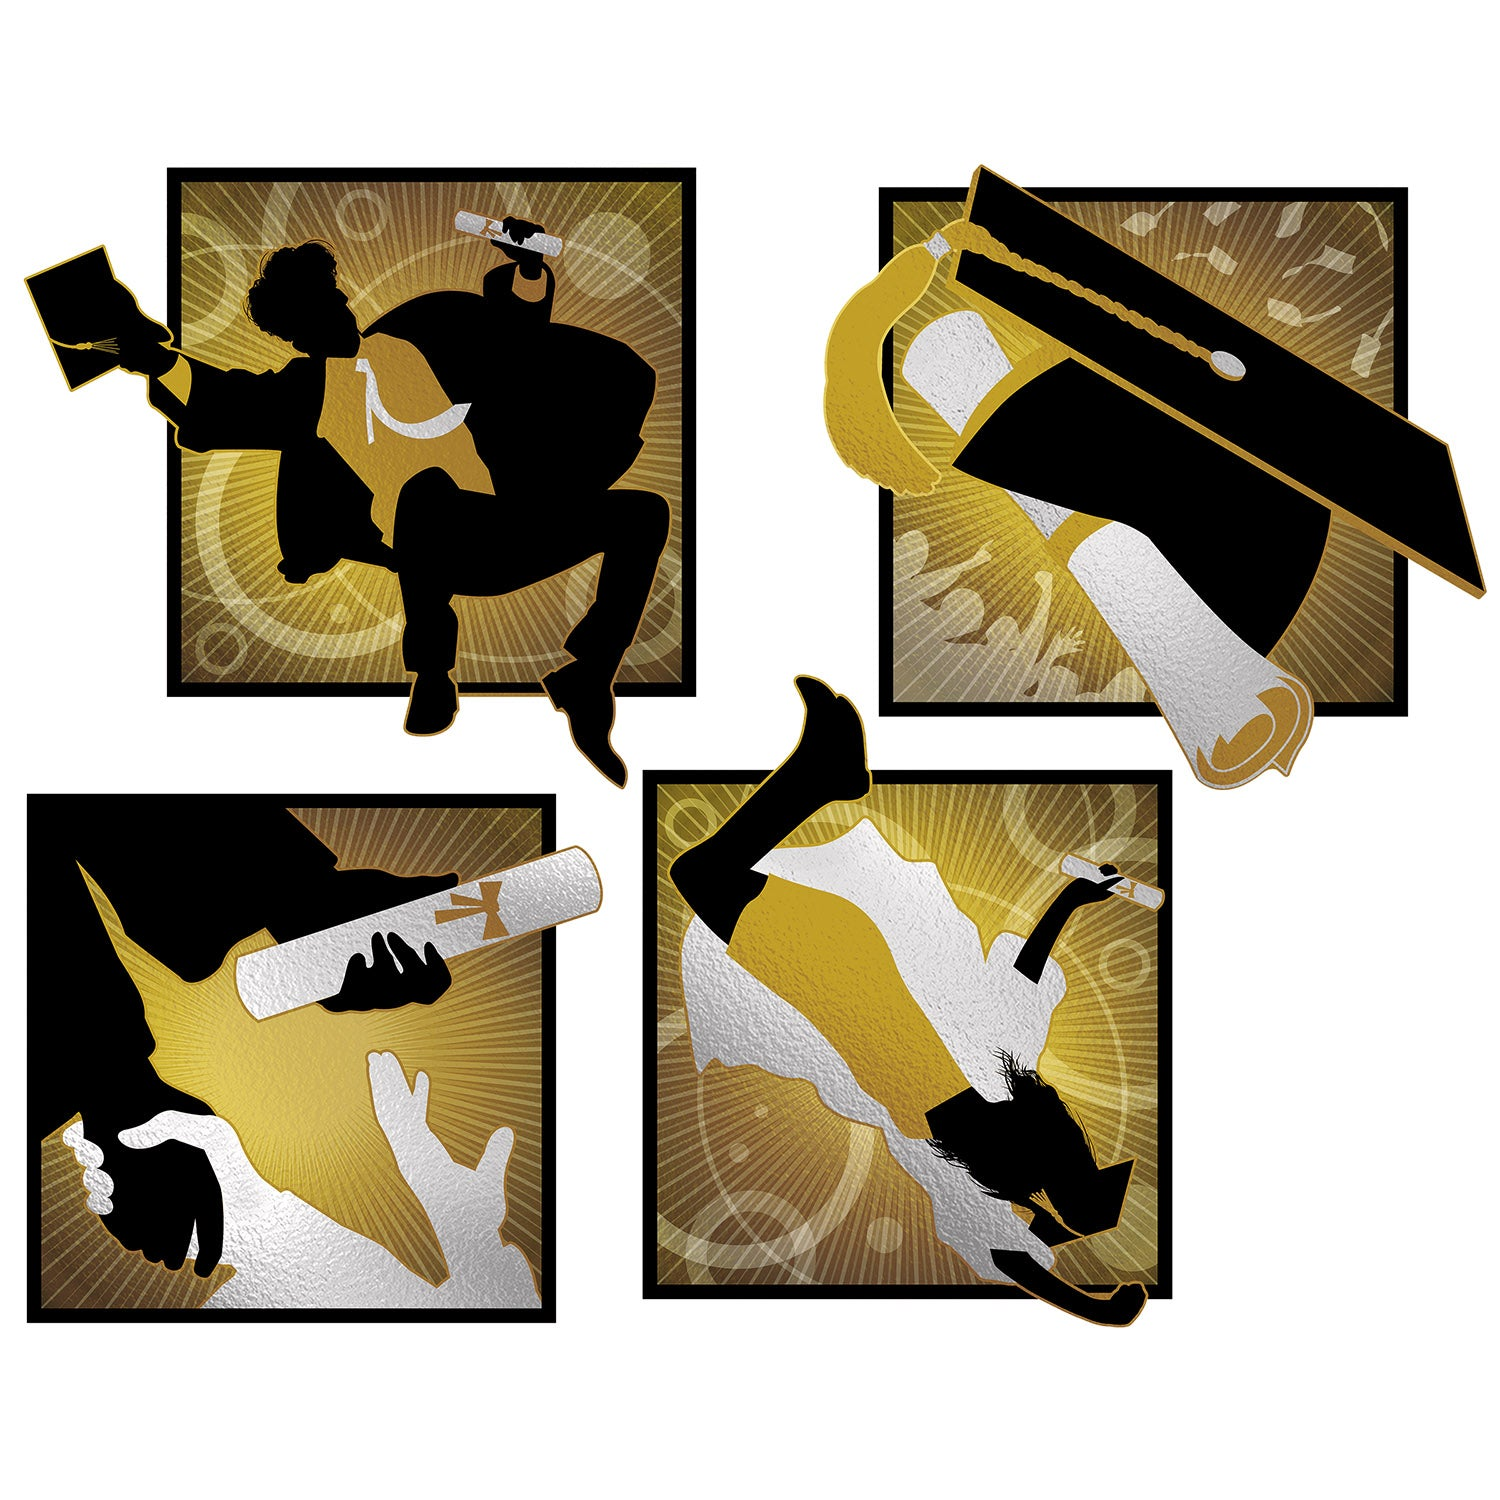 Foil Graduation Cutouts (4/Pkg) by Beistle - Graduation Theme Decorations